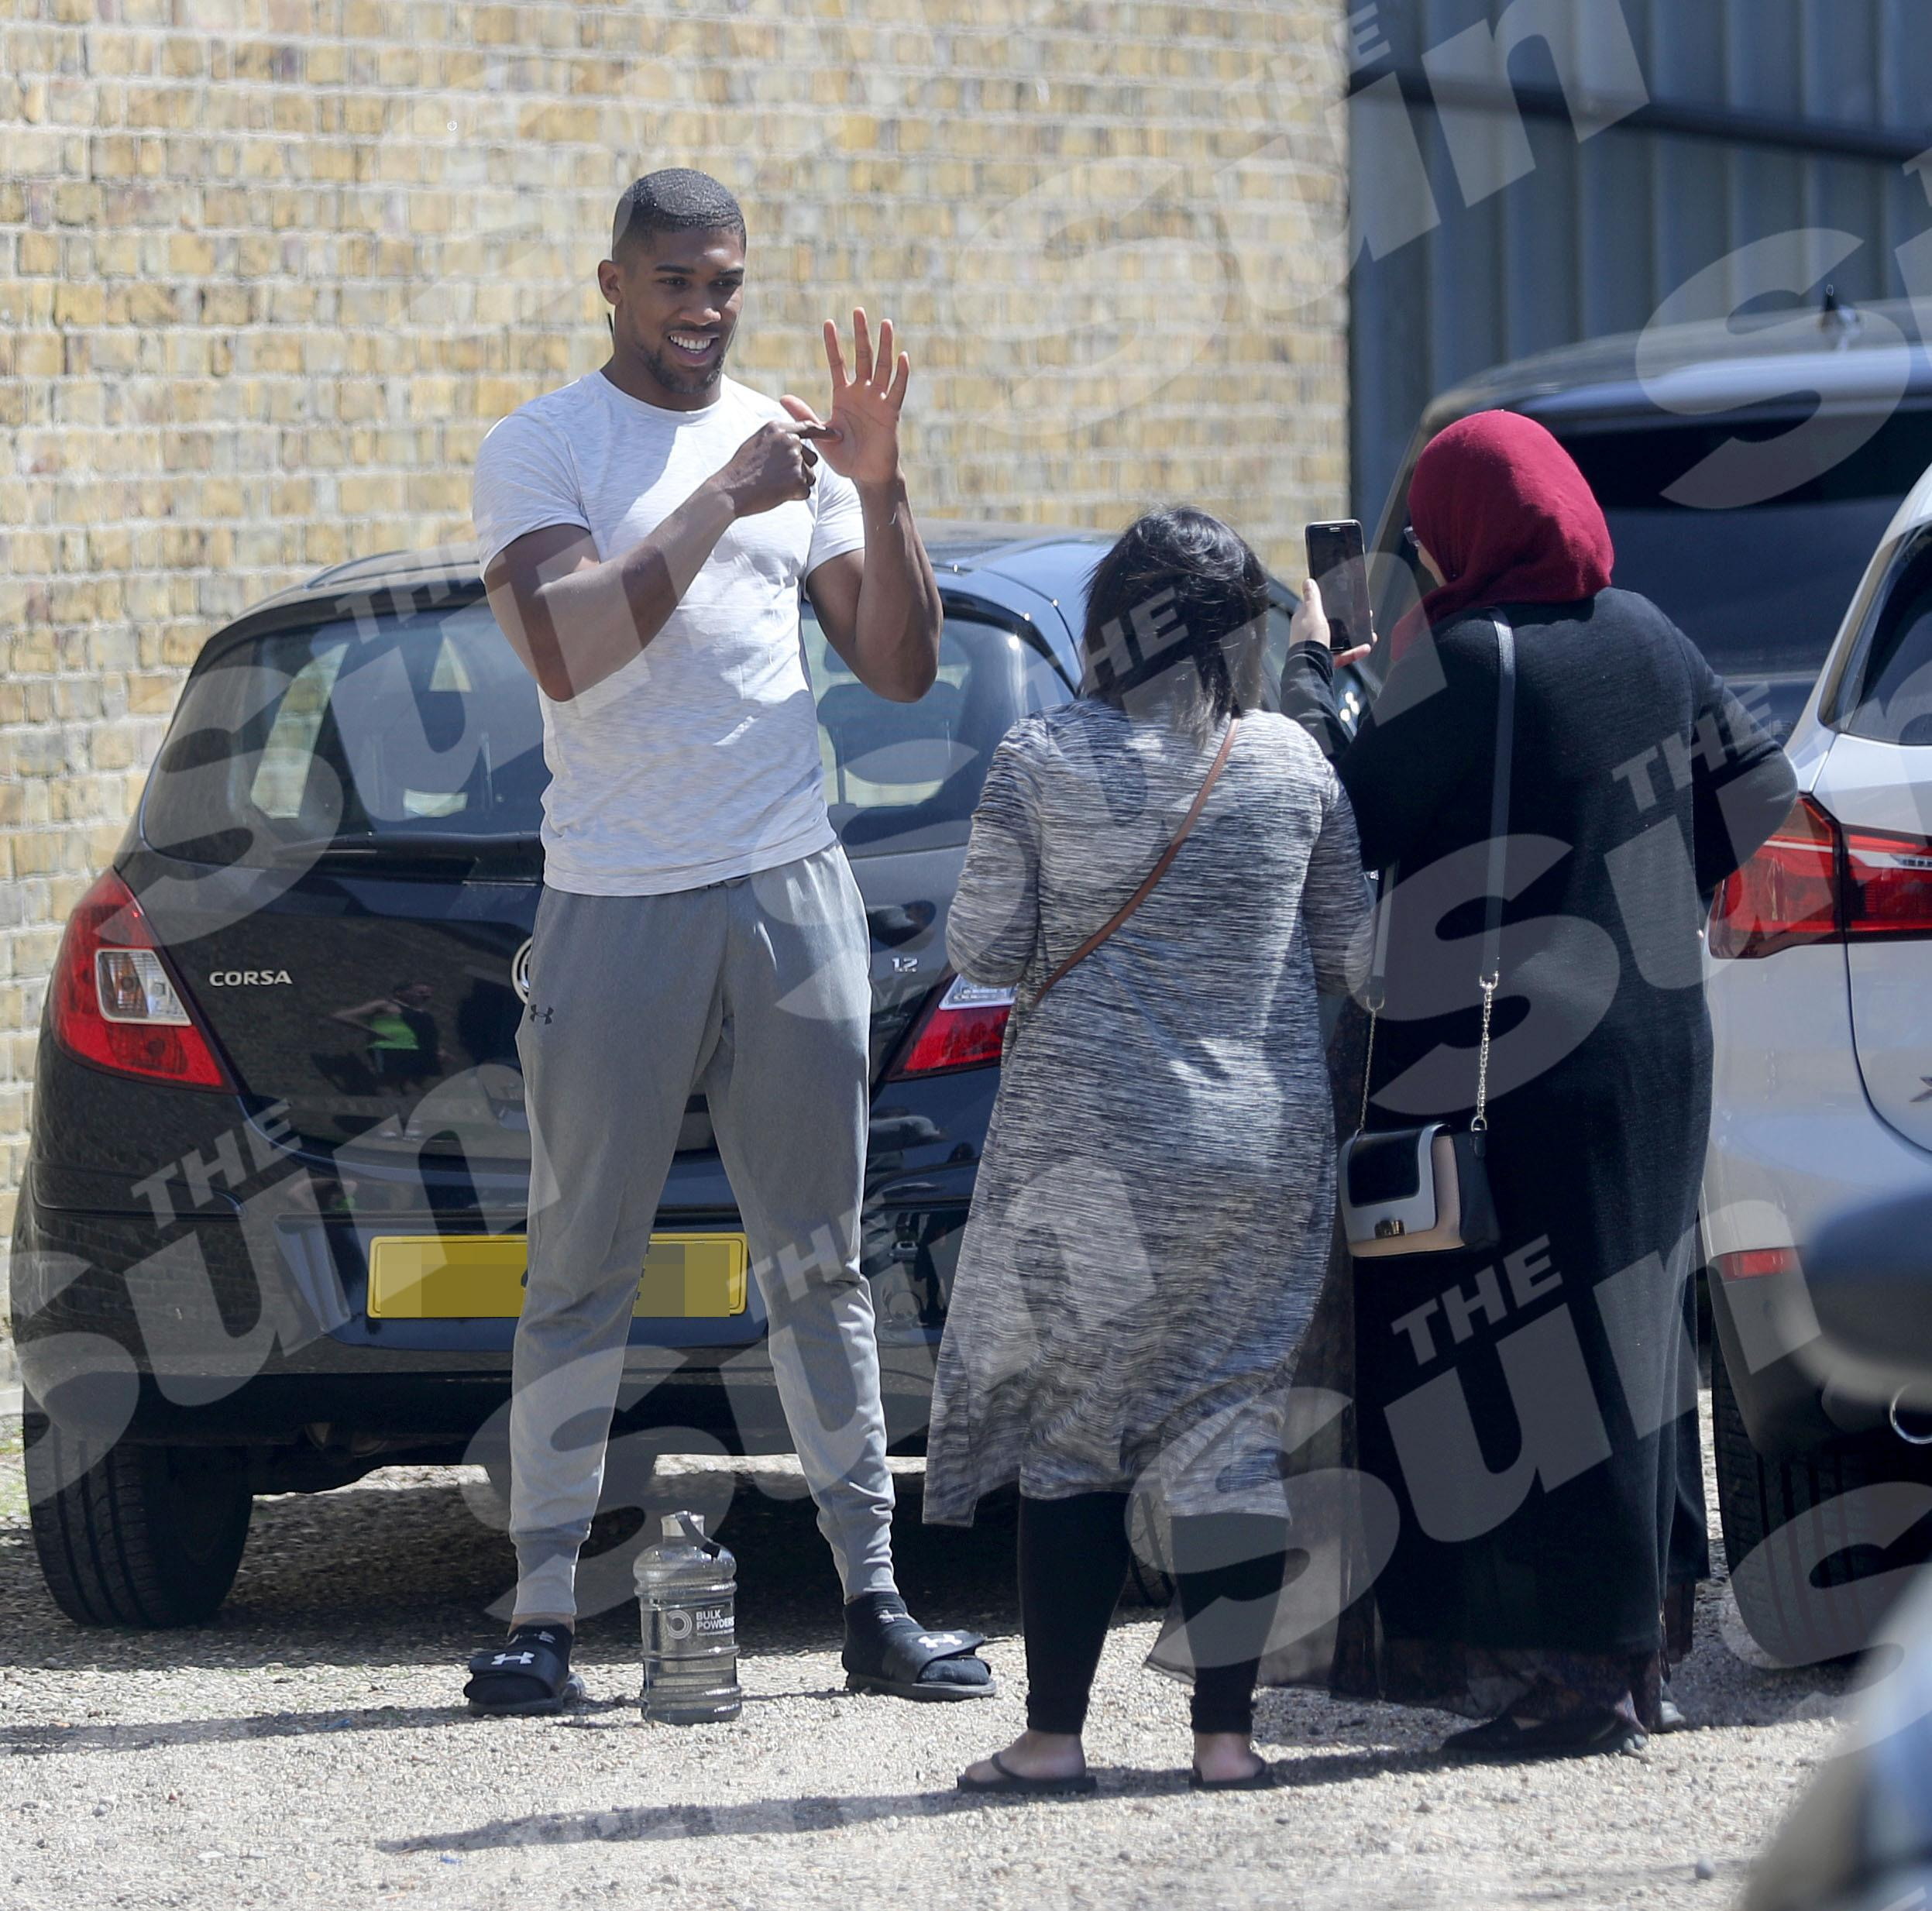 SunSport's exclusive images show WBO, WBA and IBF heavyweight champ Anthony Joshua learning sign language from fans